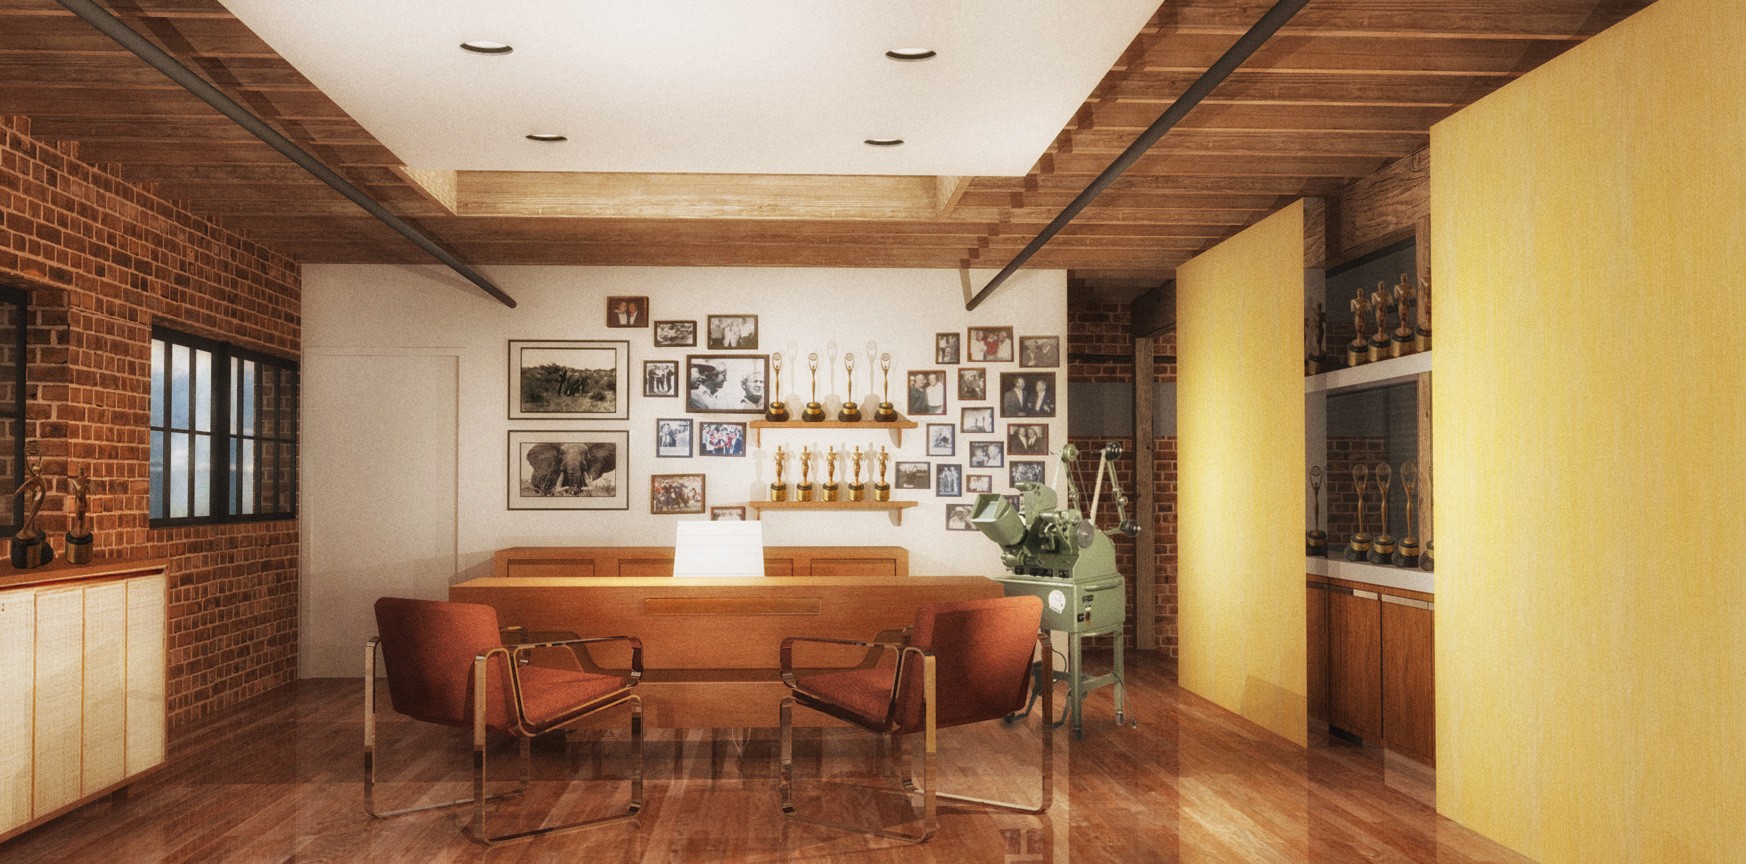 BILL HONEYMAN'S OFFICE - RENDERING